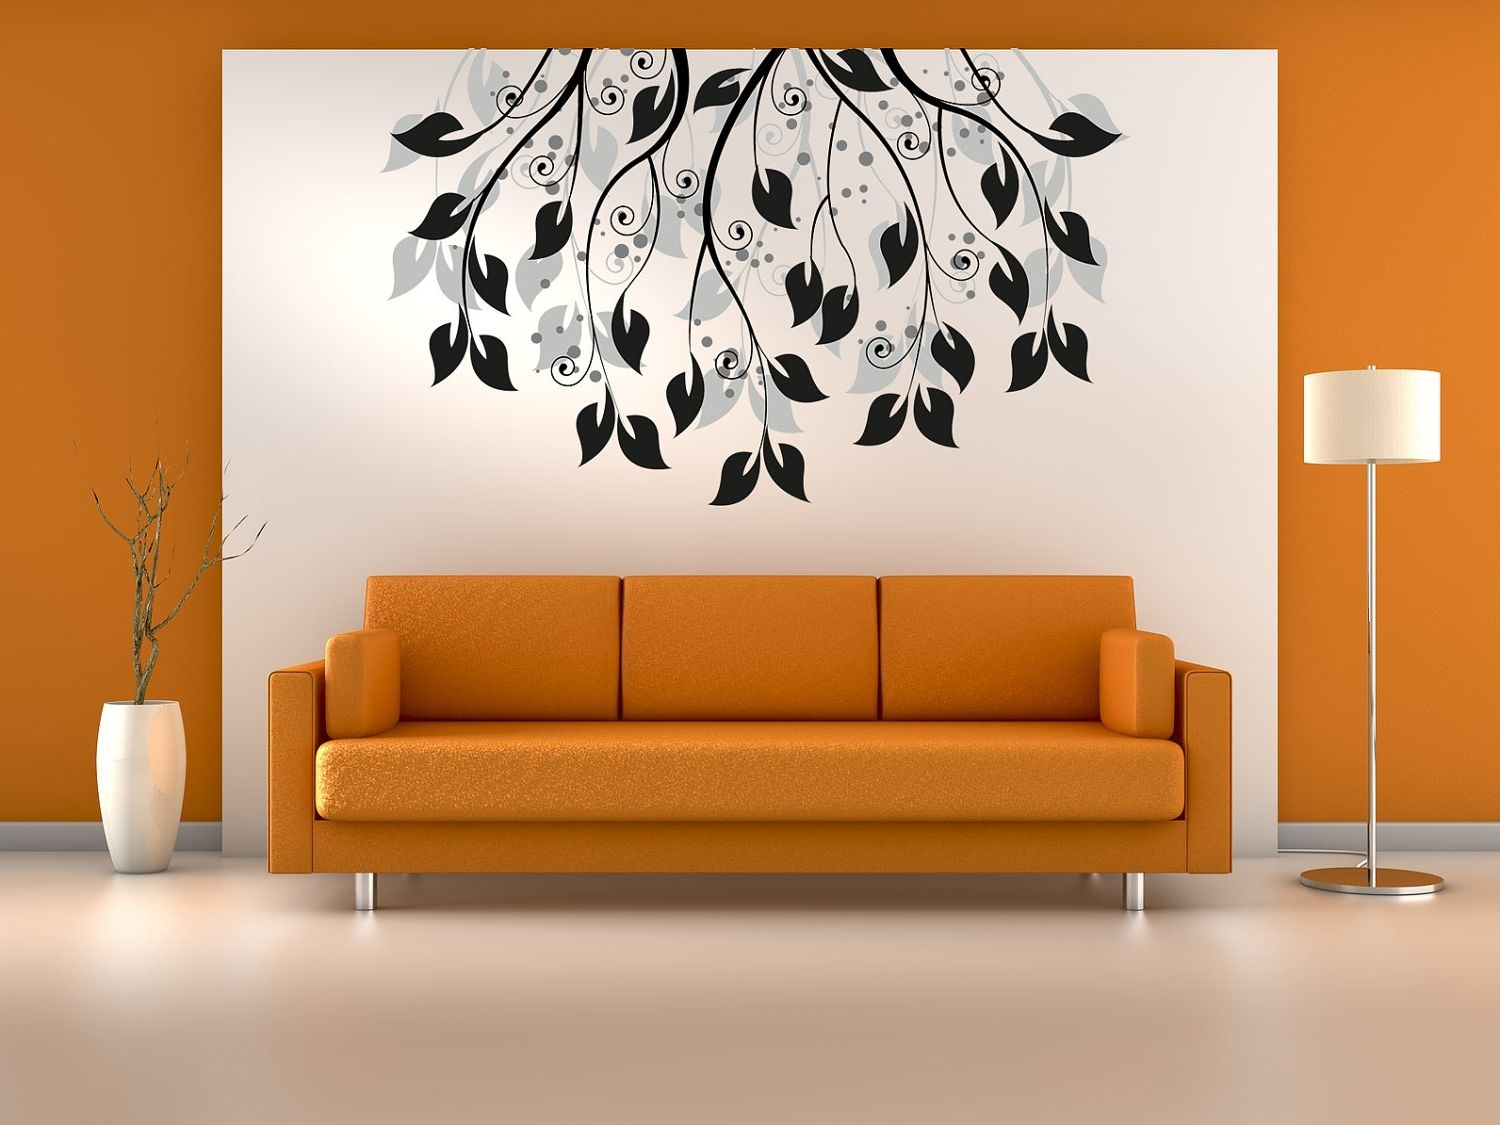 Living Room : Living Room Wall Decor Kitchen Utrails Home Design With Regard To Most Current Home Decor Wall Art (View 16 of 20)